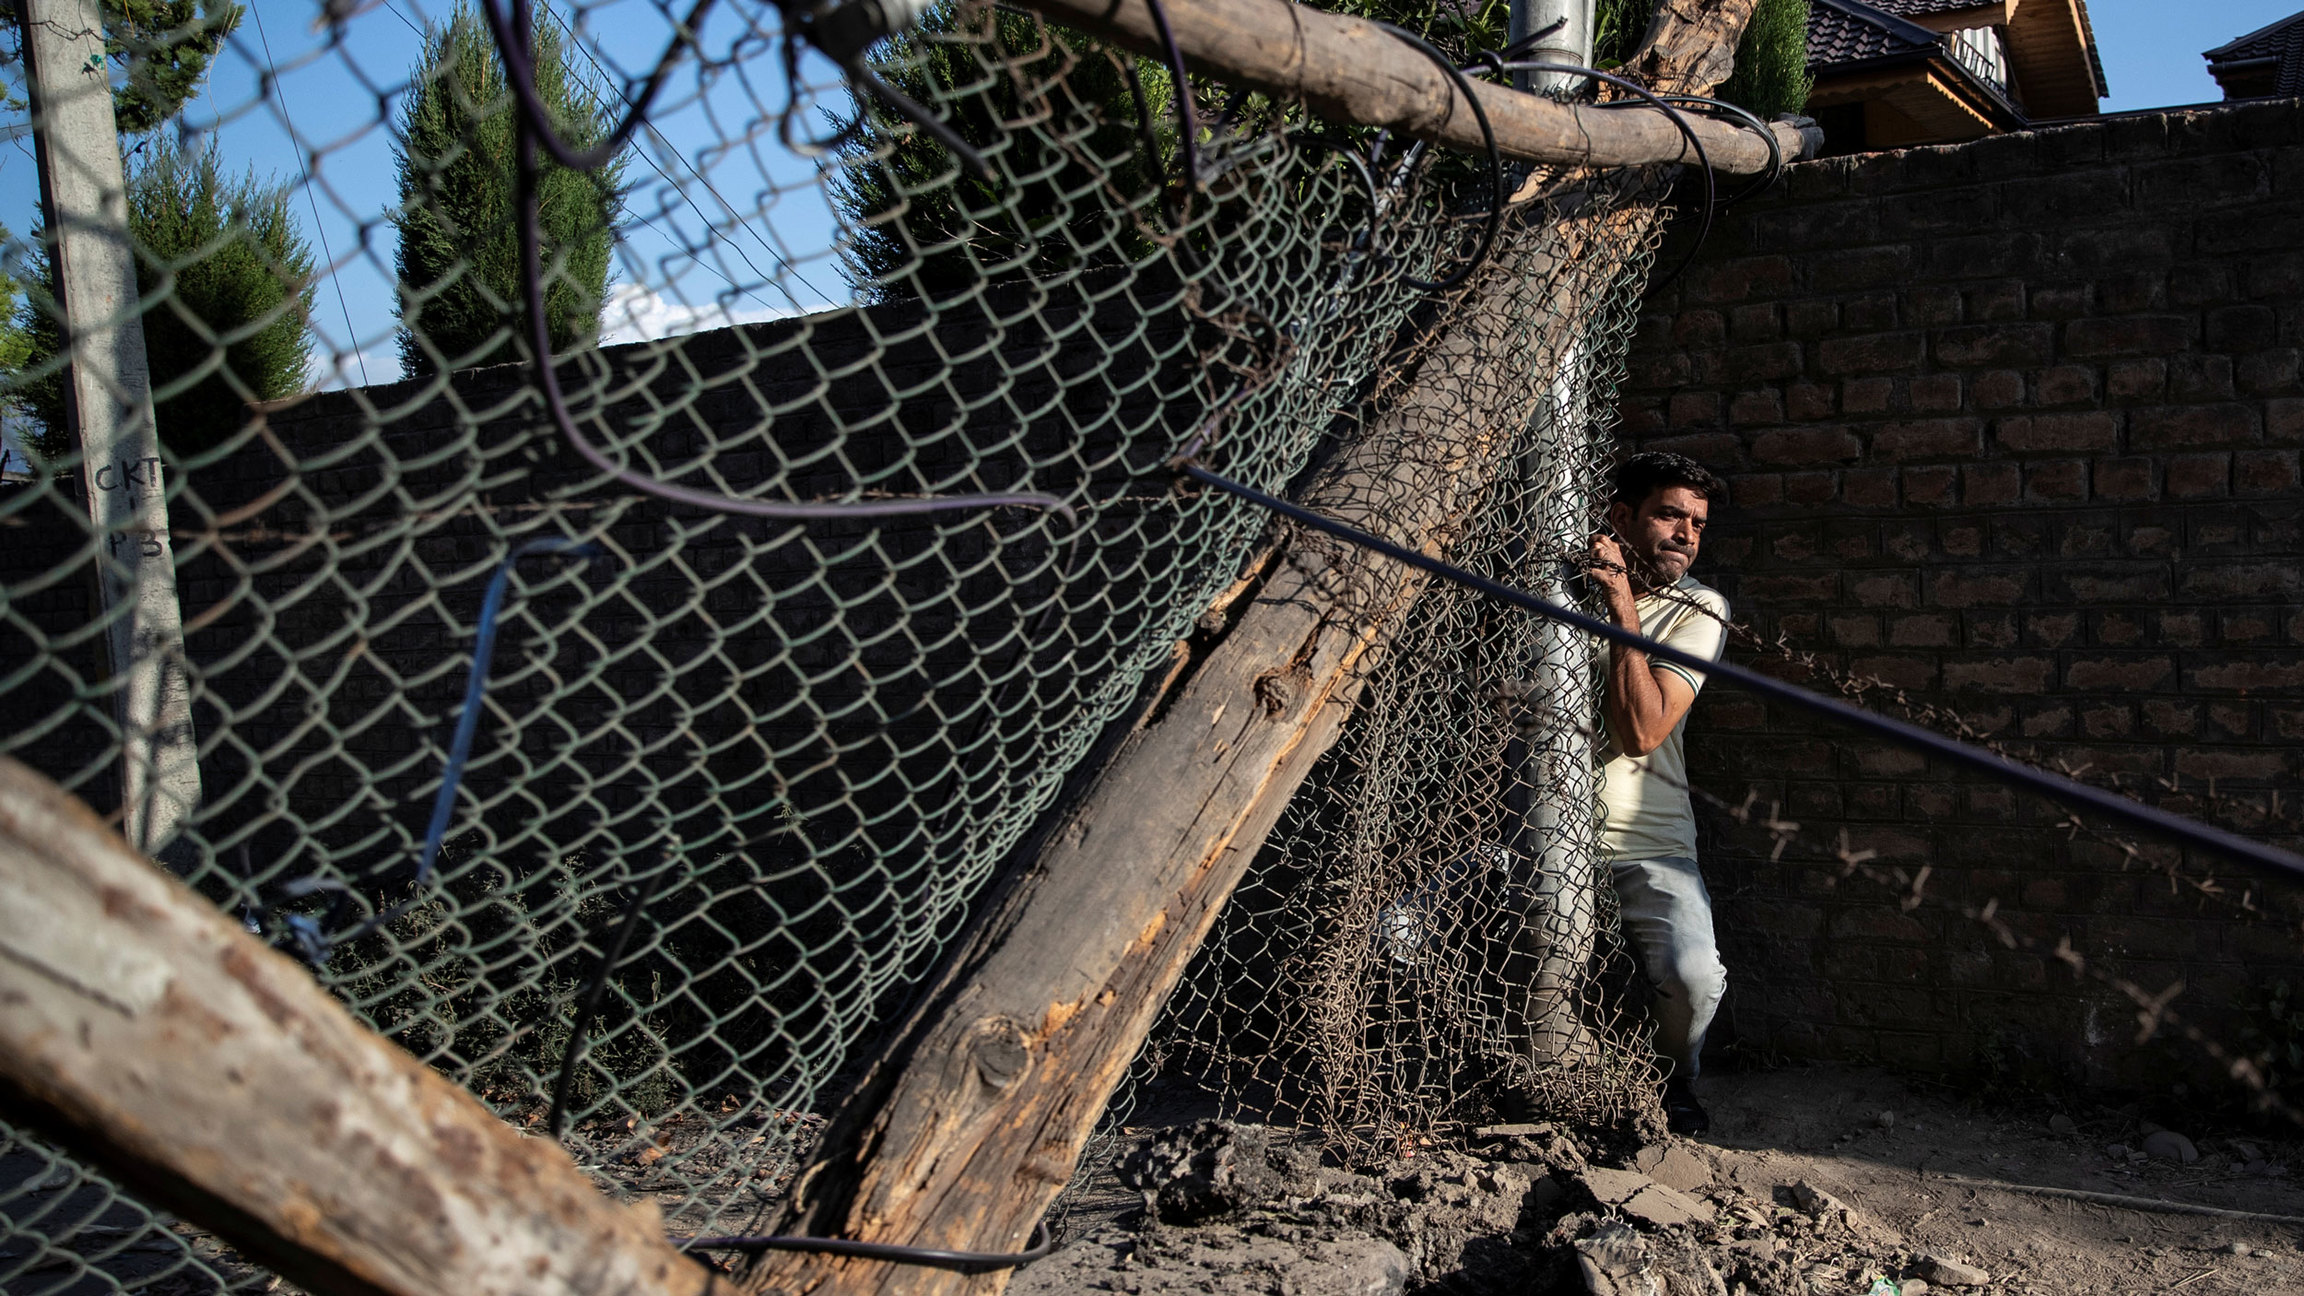 A Kashmiri man is shown squeezing his body through a chain link and wooden barricade.